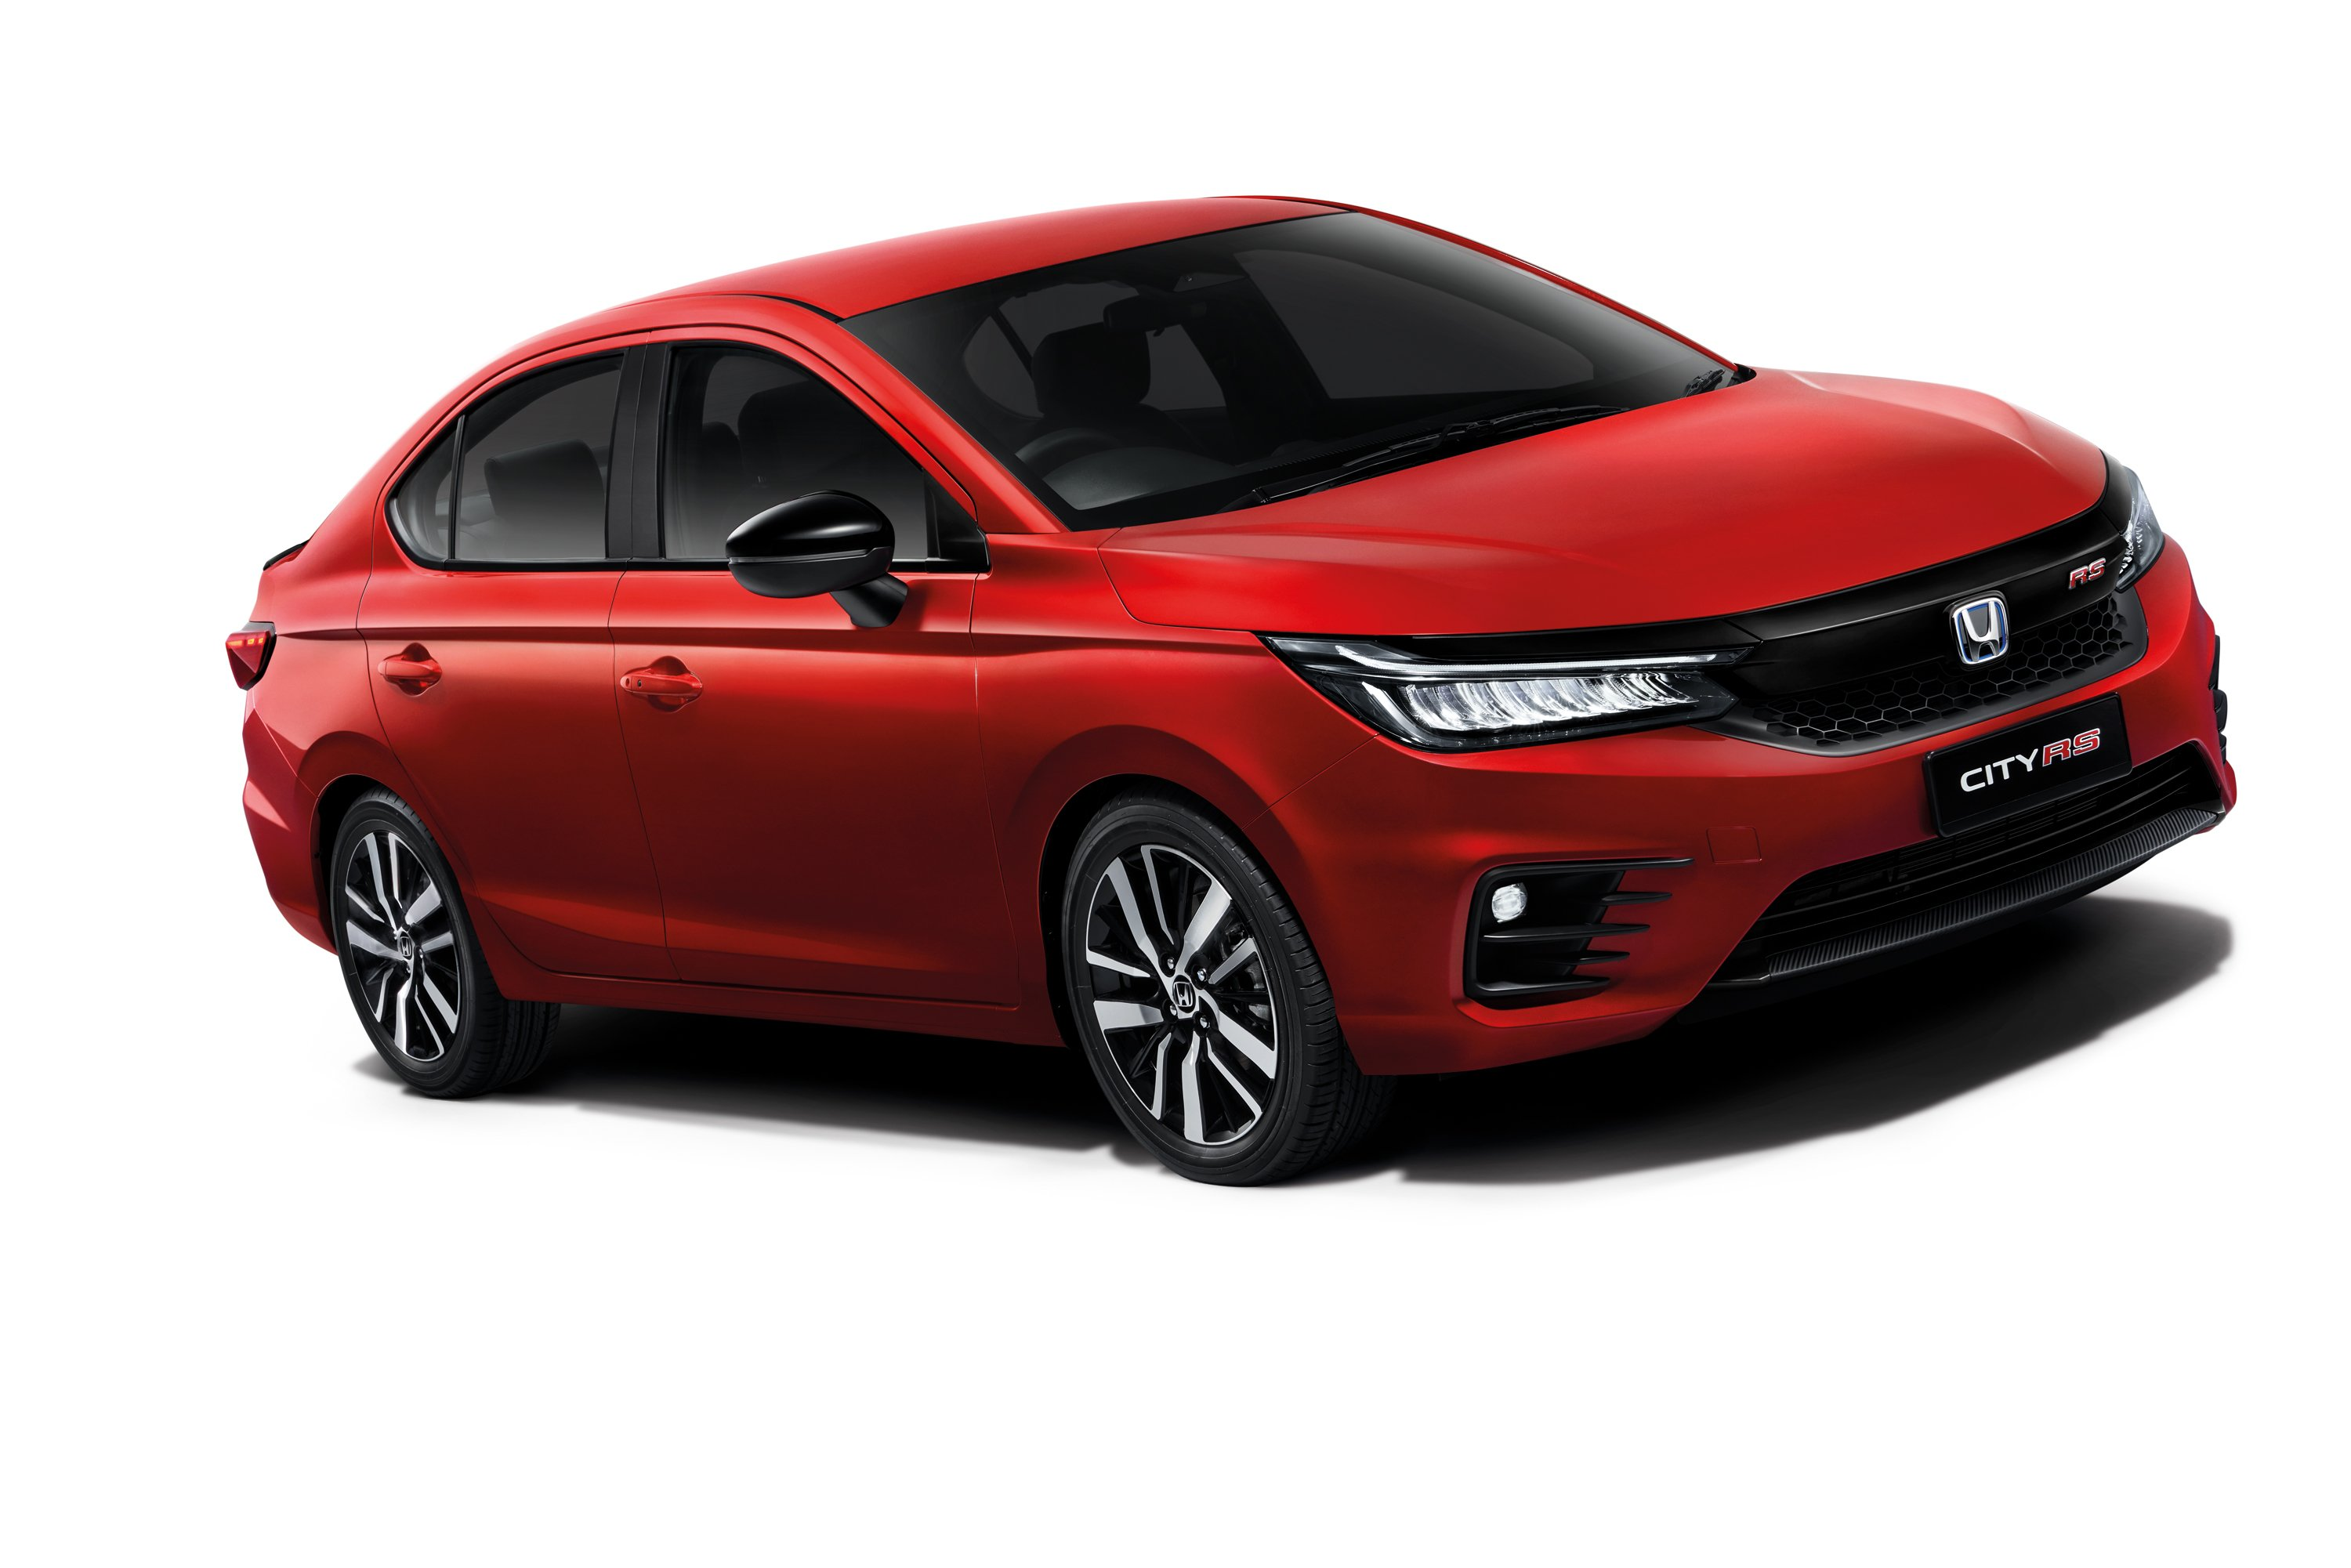 The No.1 Non-National B-Segment, All-New City RS e:HEV Priced At RM105,950.45¹ - thumbnail